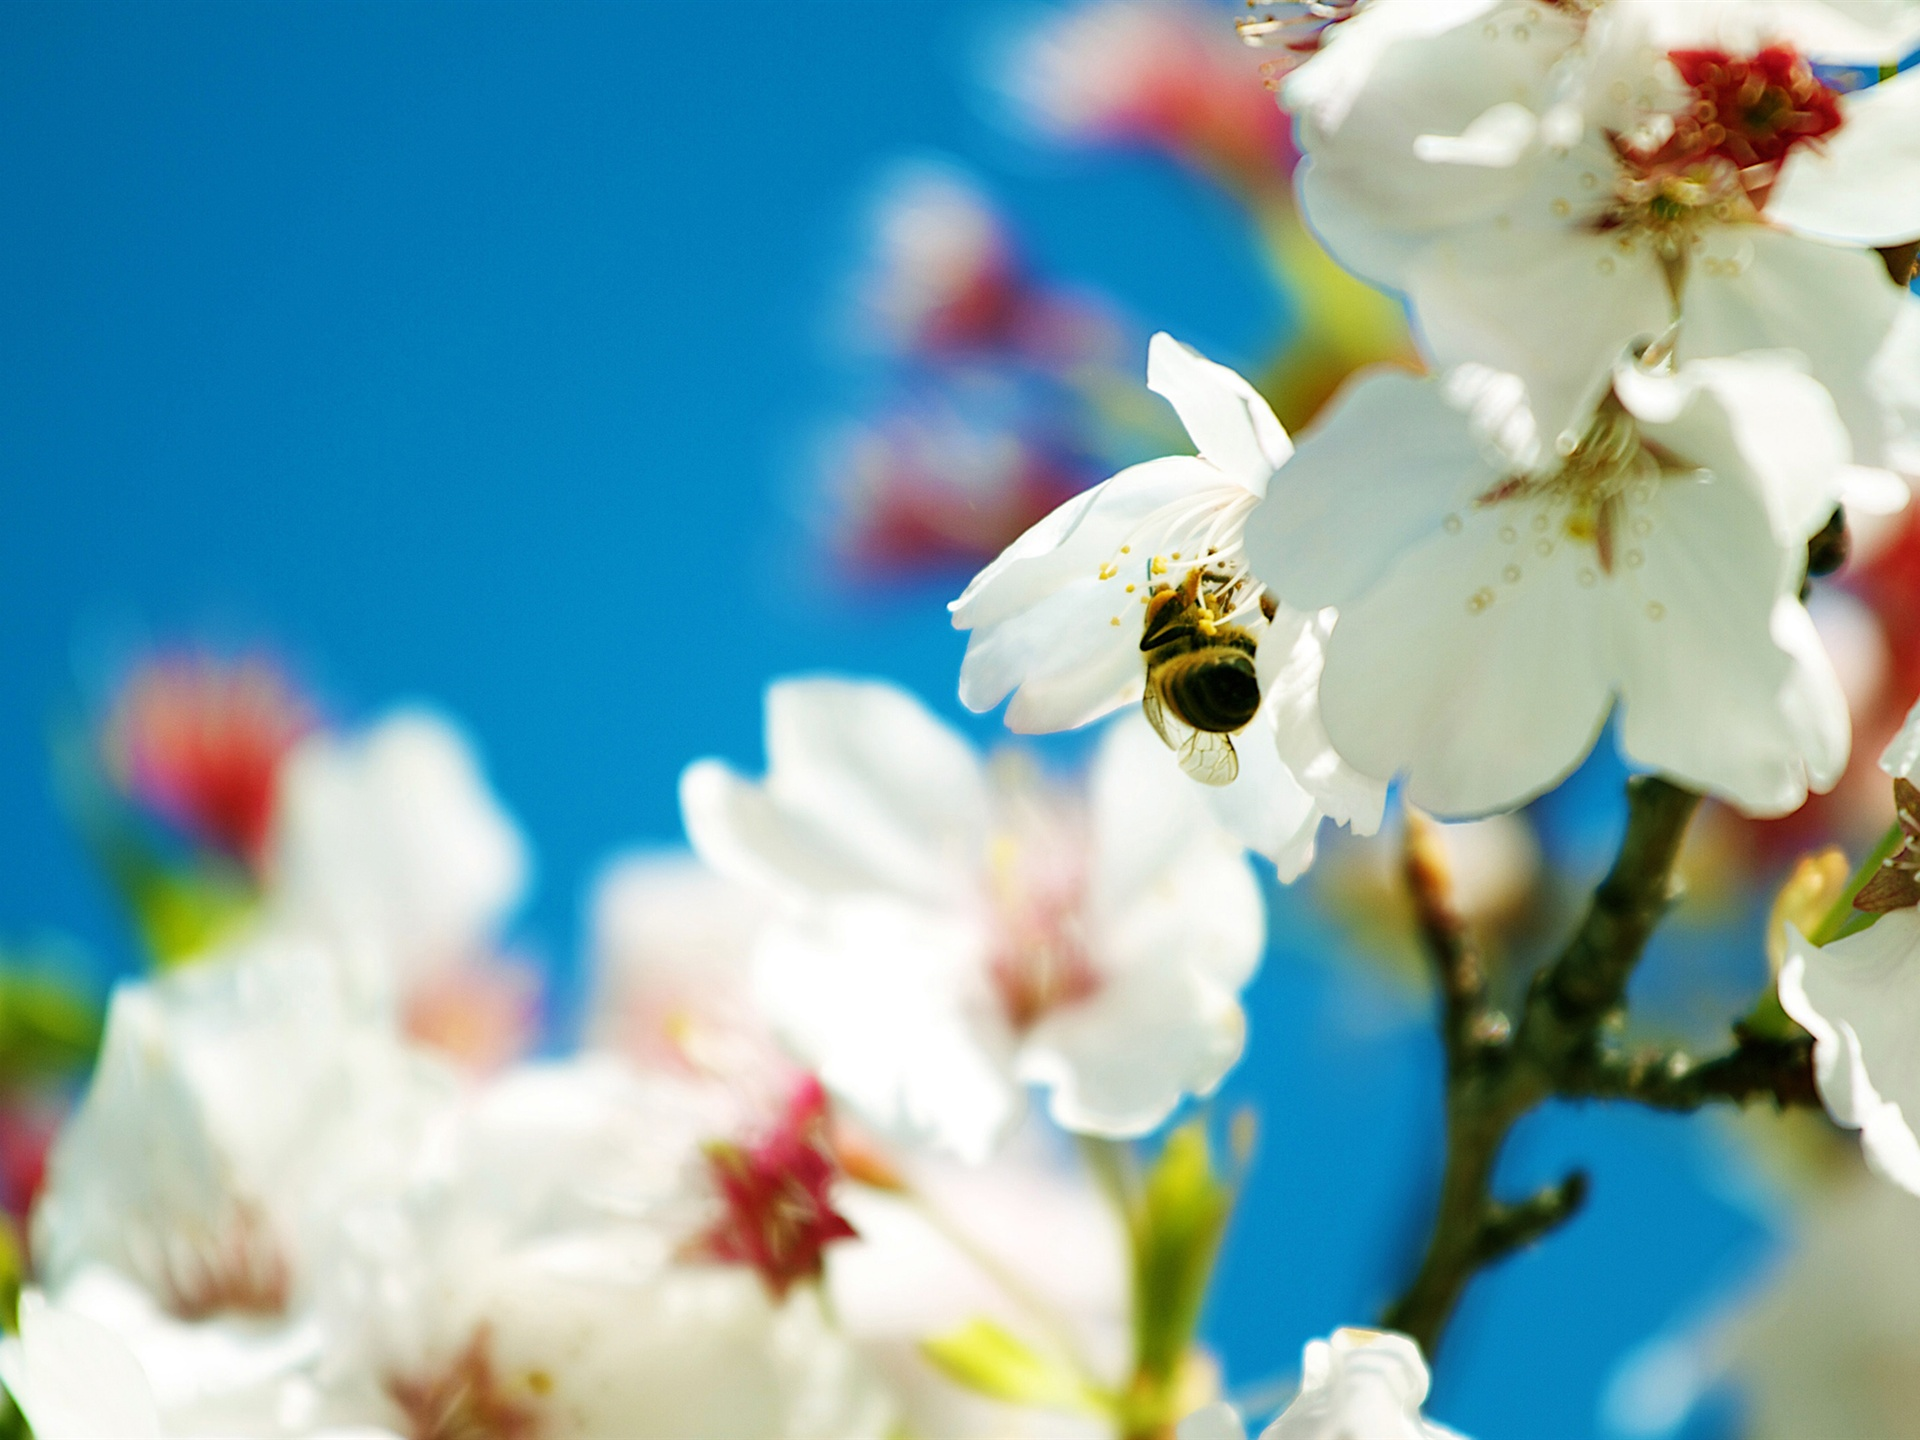 Bee And Snow-white Pear Flowers Wallpaper